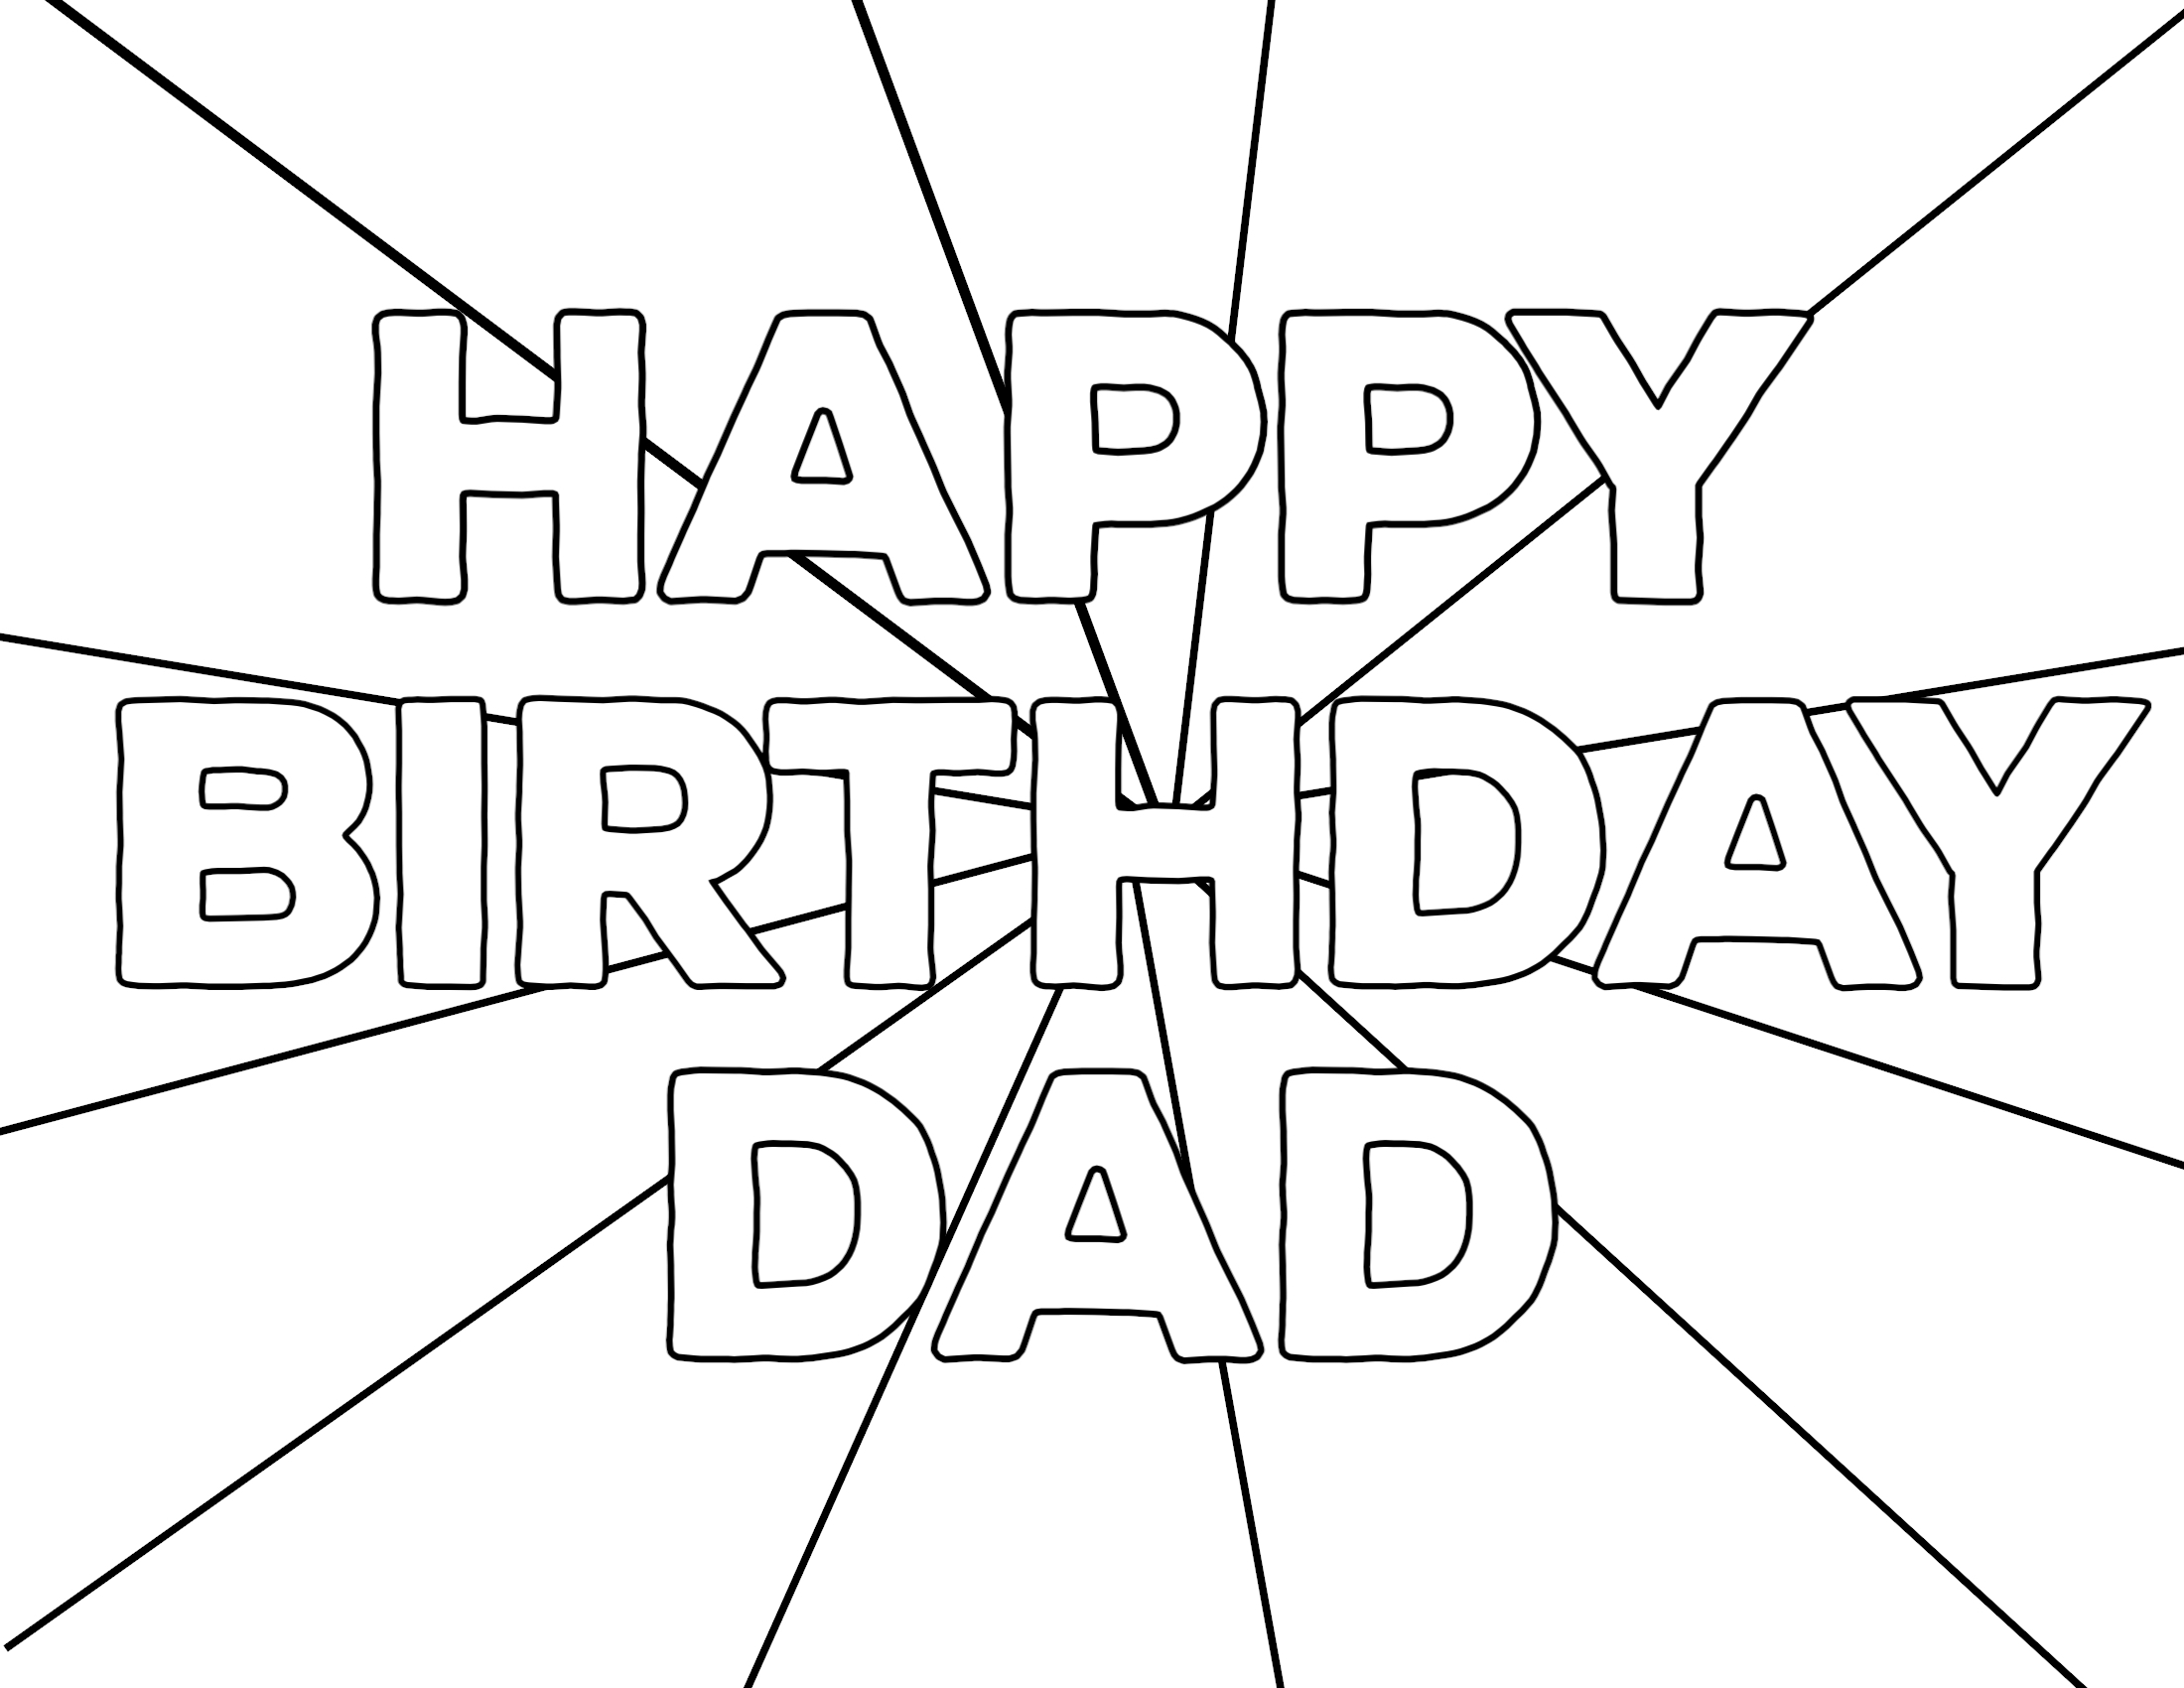 happy birthday colouring pages for dad happy birthday dad printable coloring pages coloring home colouring birthday pages for happy dad